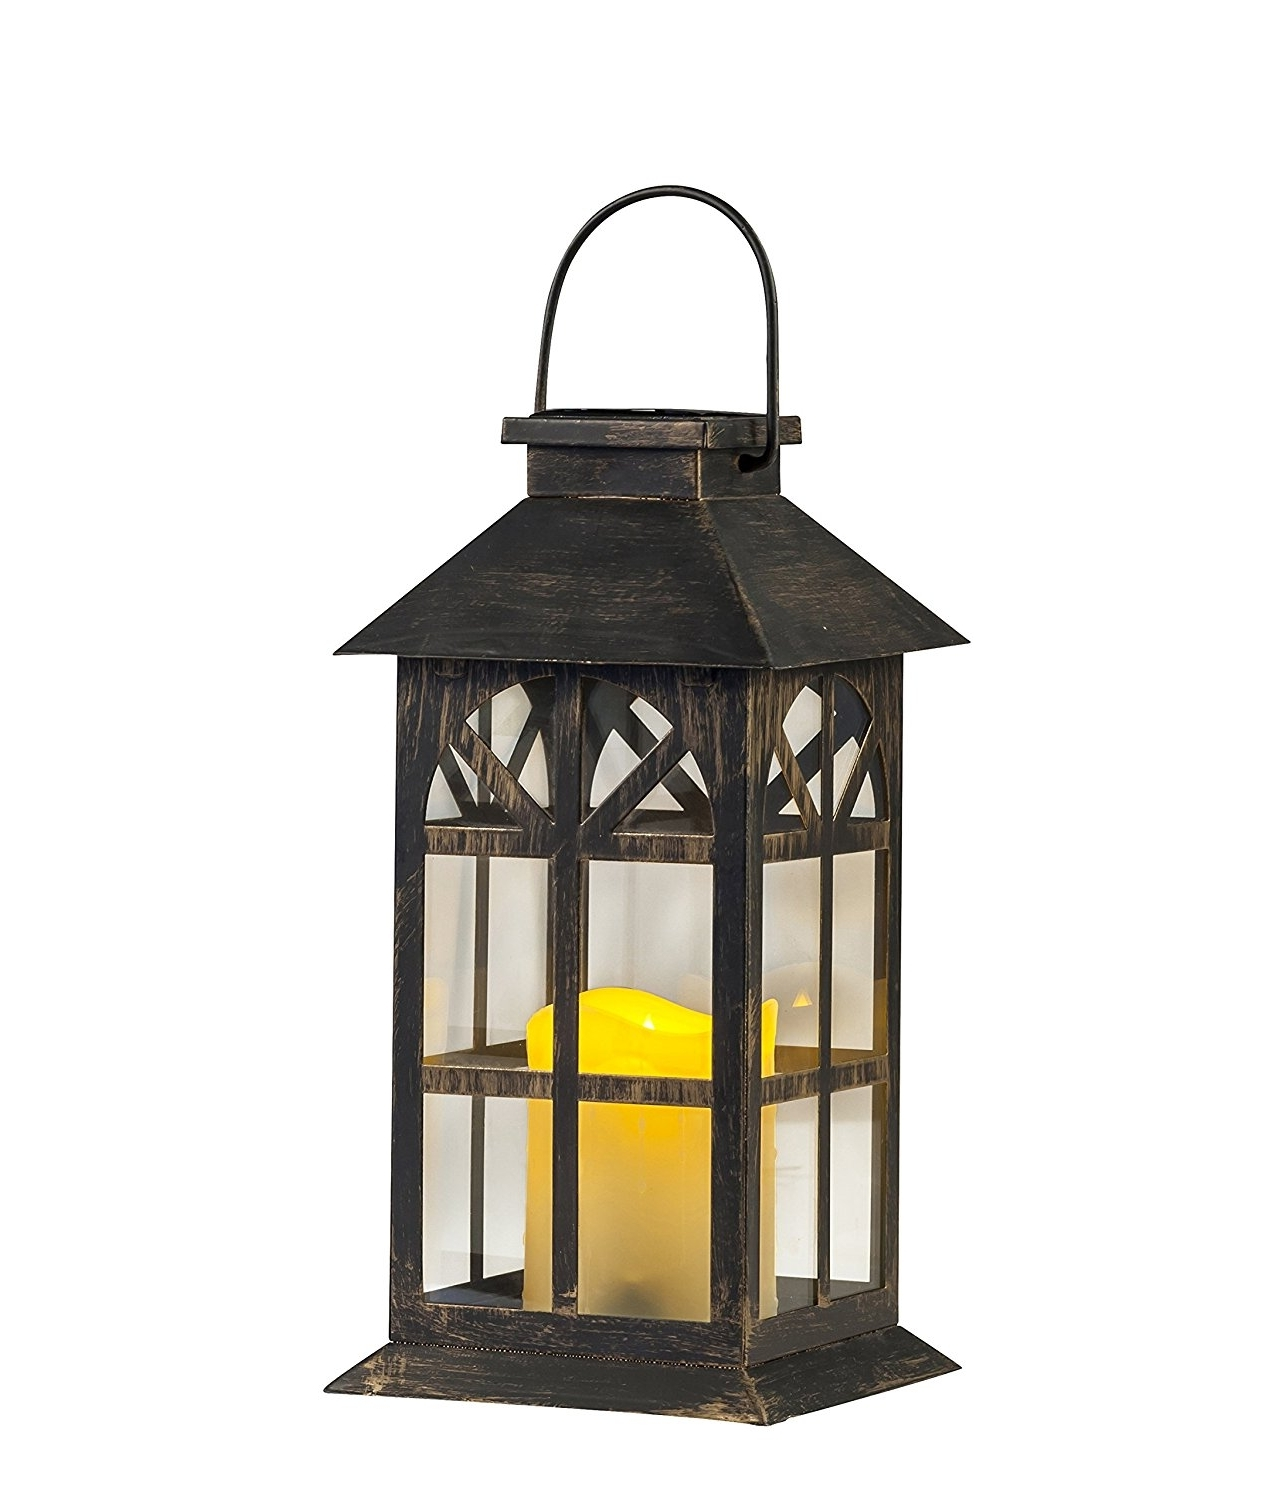 Widely Used Outdoor Solar Lanterns Intended For Best Outdoor Solar Lanterns (View 10 of 20)